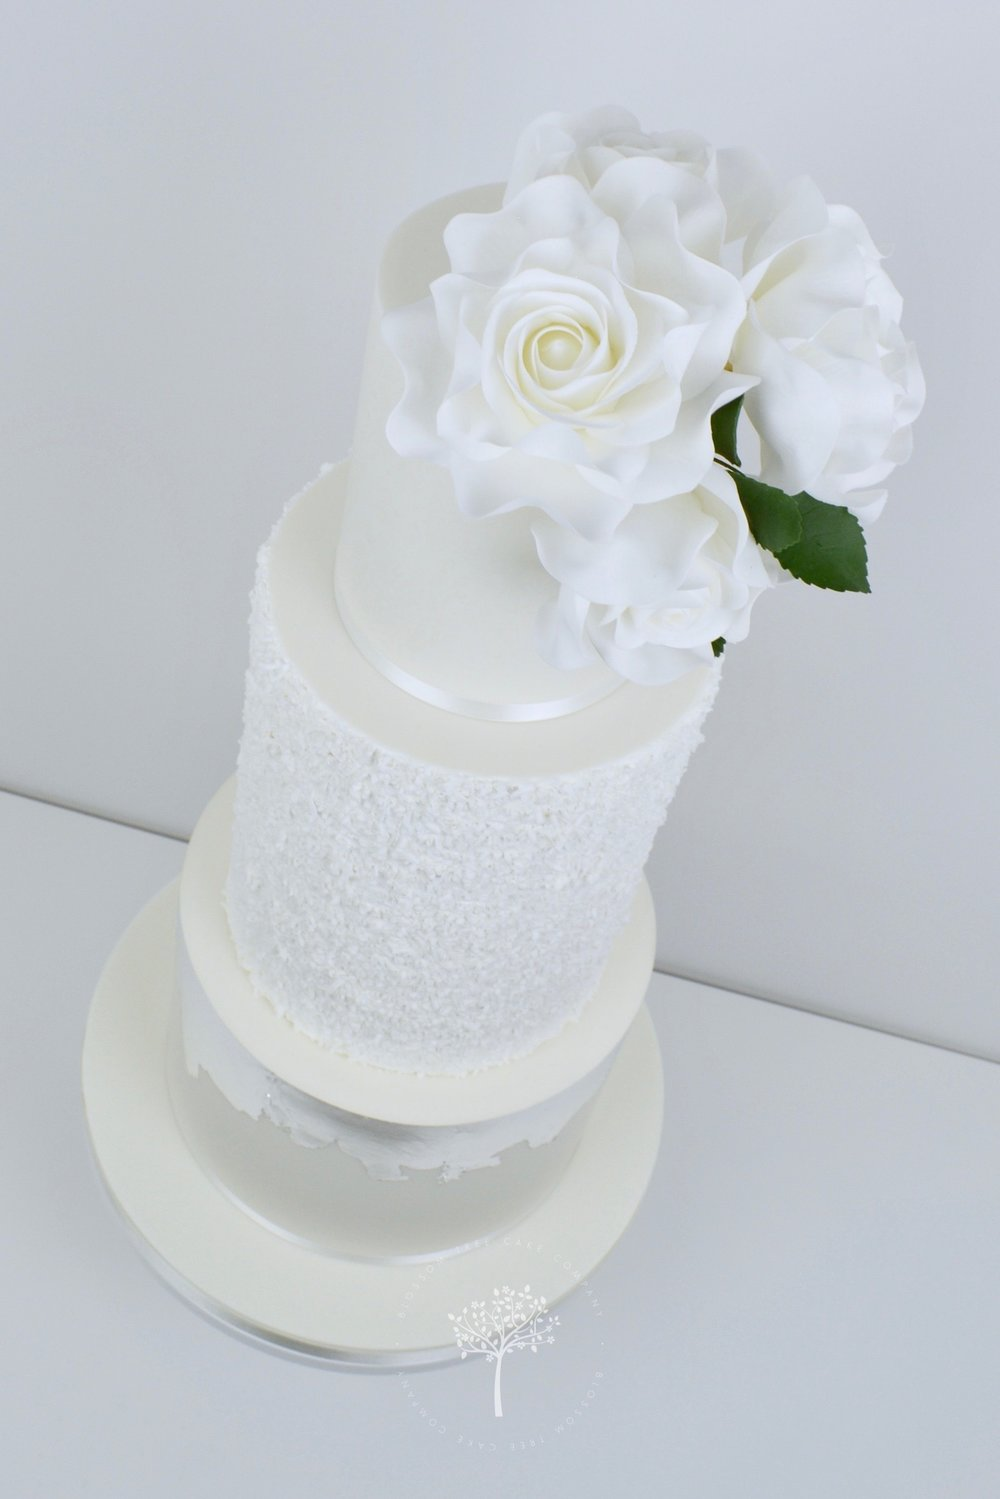 White Rose and Silver wedding cake by Blossom Tree Cake Company Harrogate North Yorkshire - angle.jpg